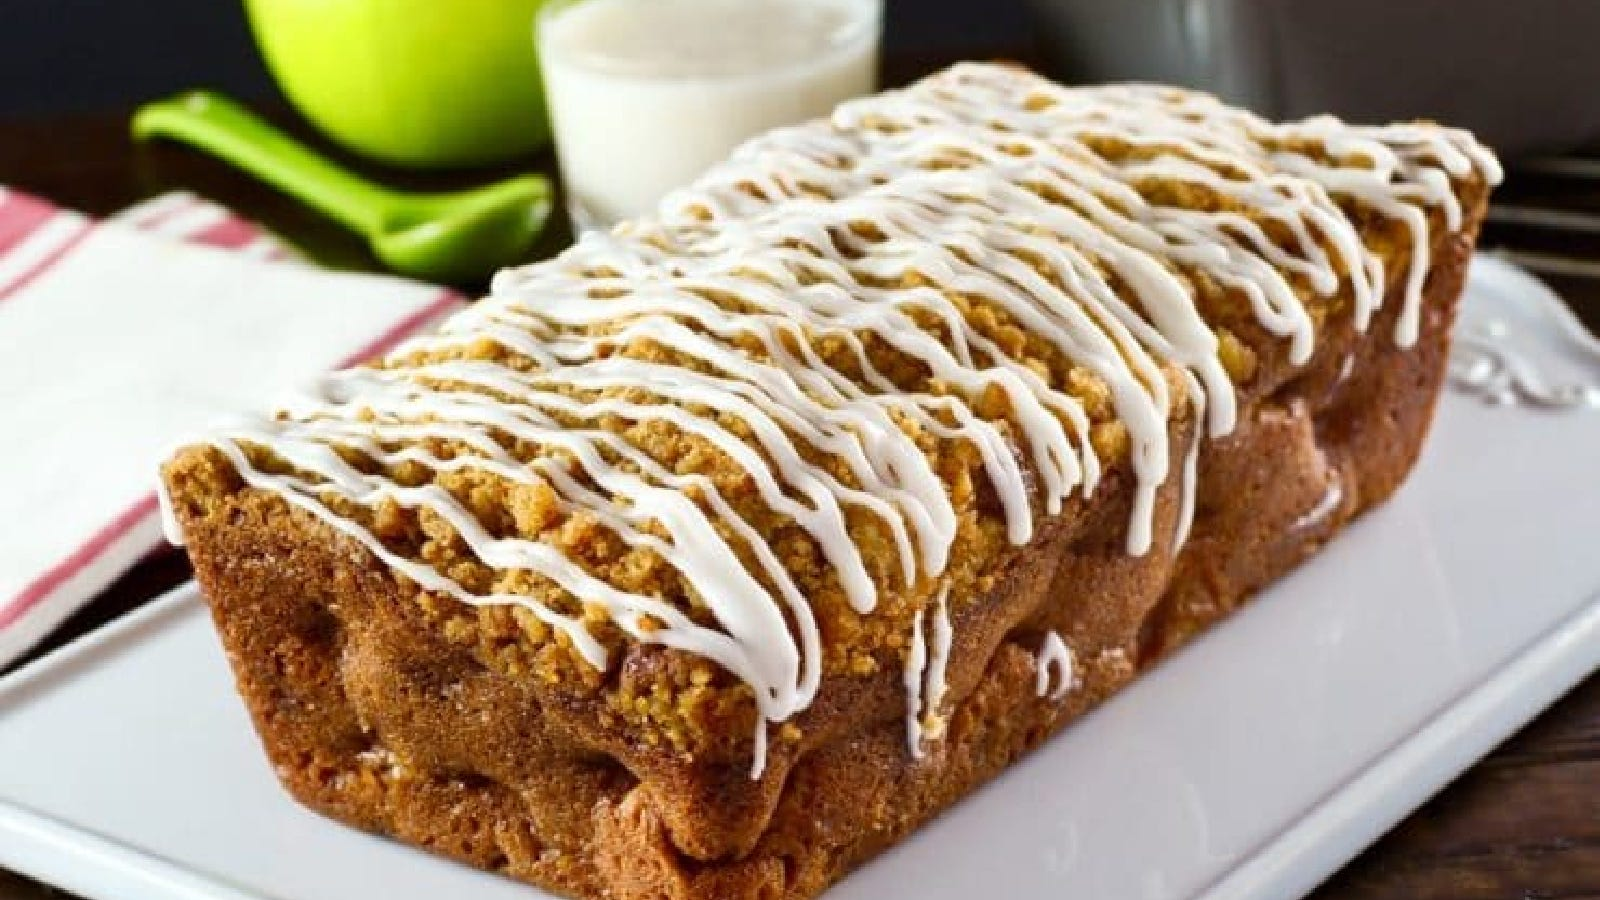 A loaf of apple streusel cake topped with crème glaze, with a glass of milk in the background.